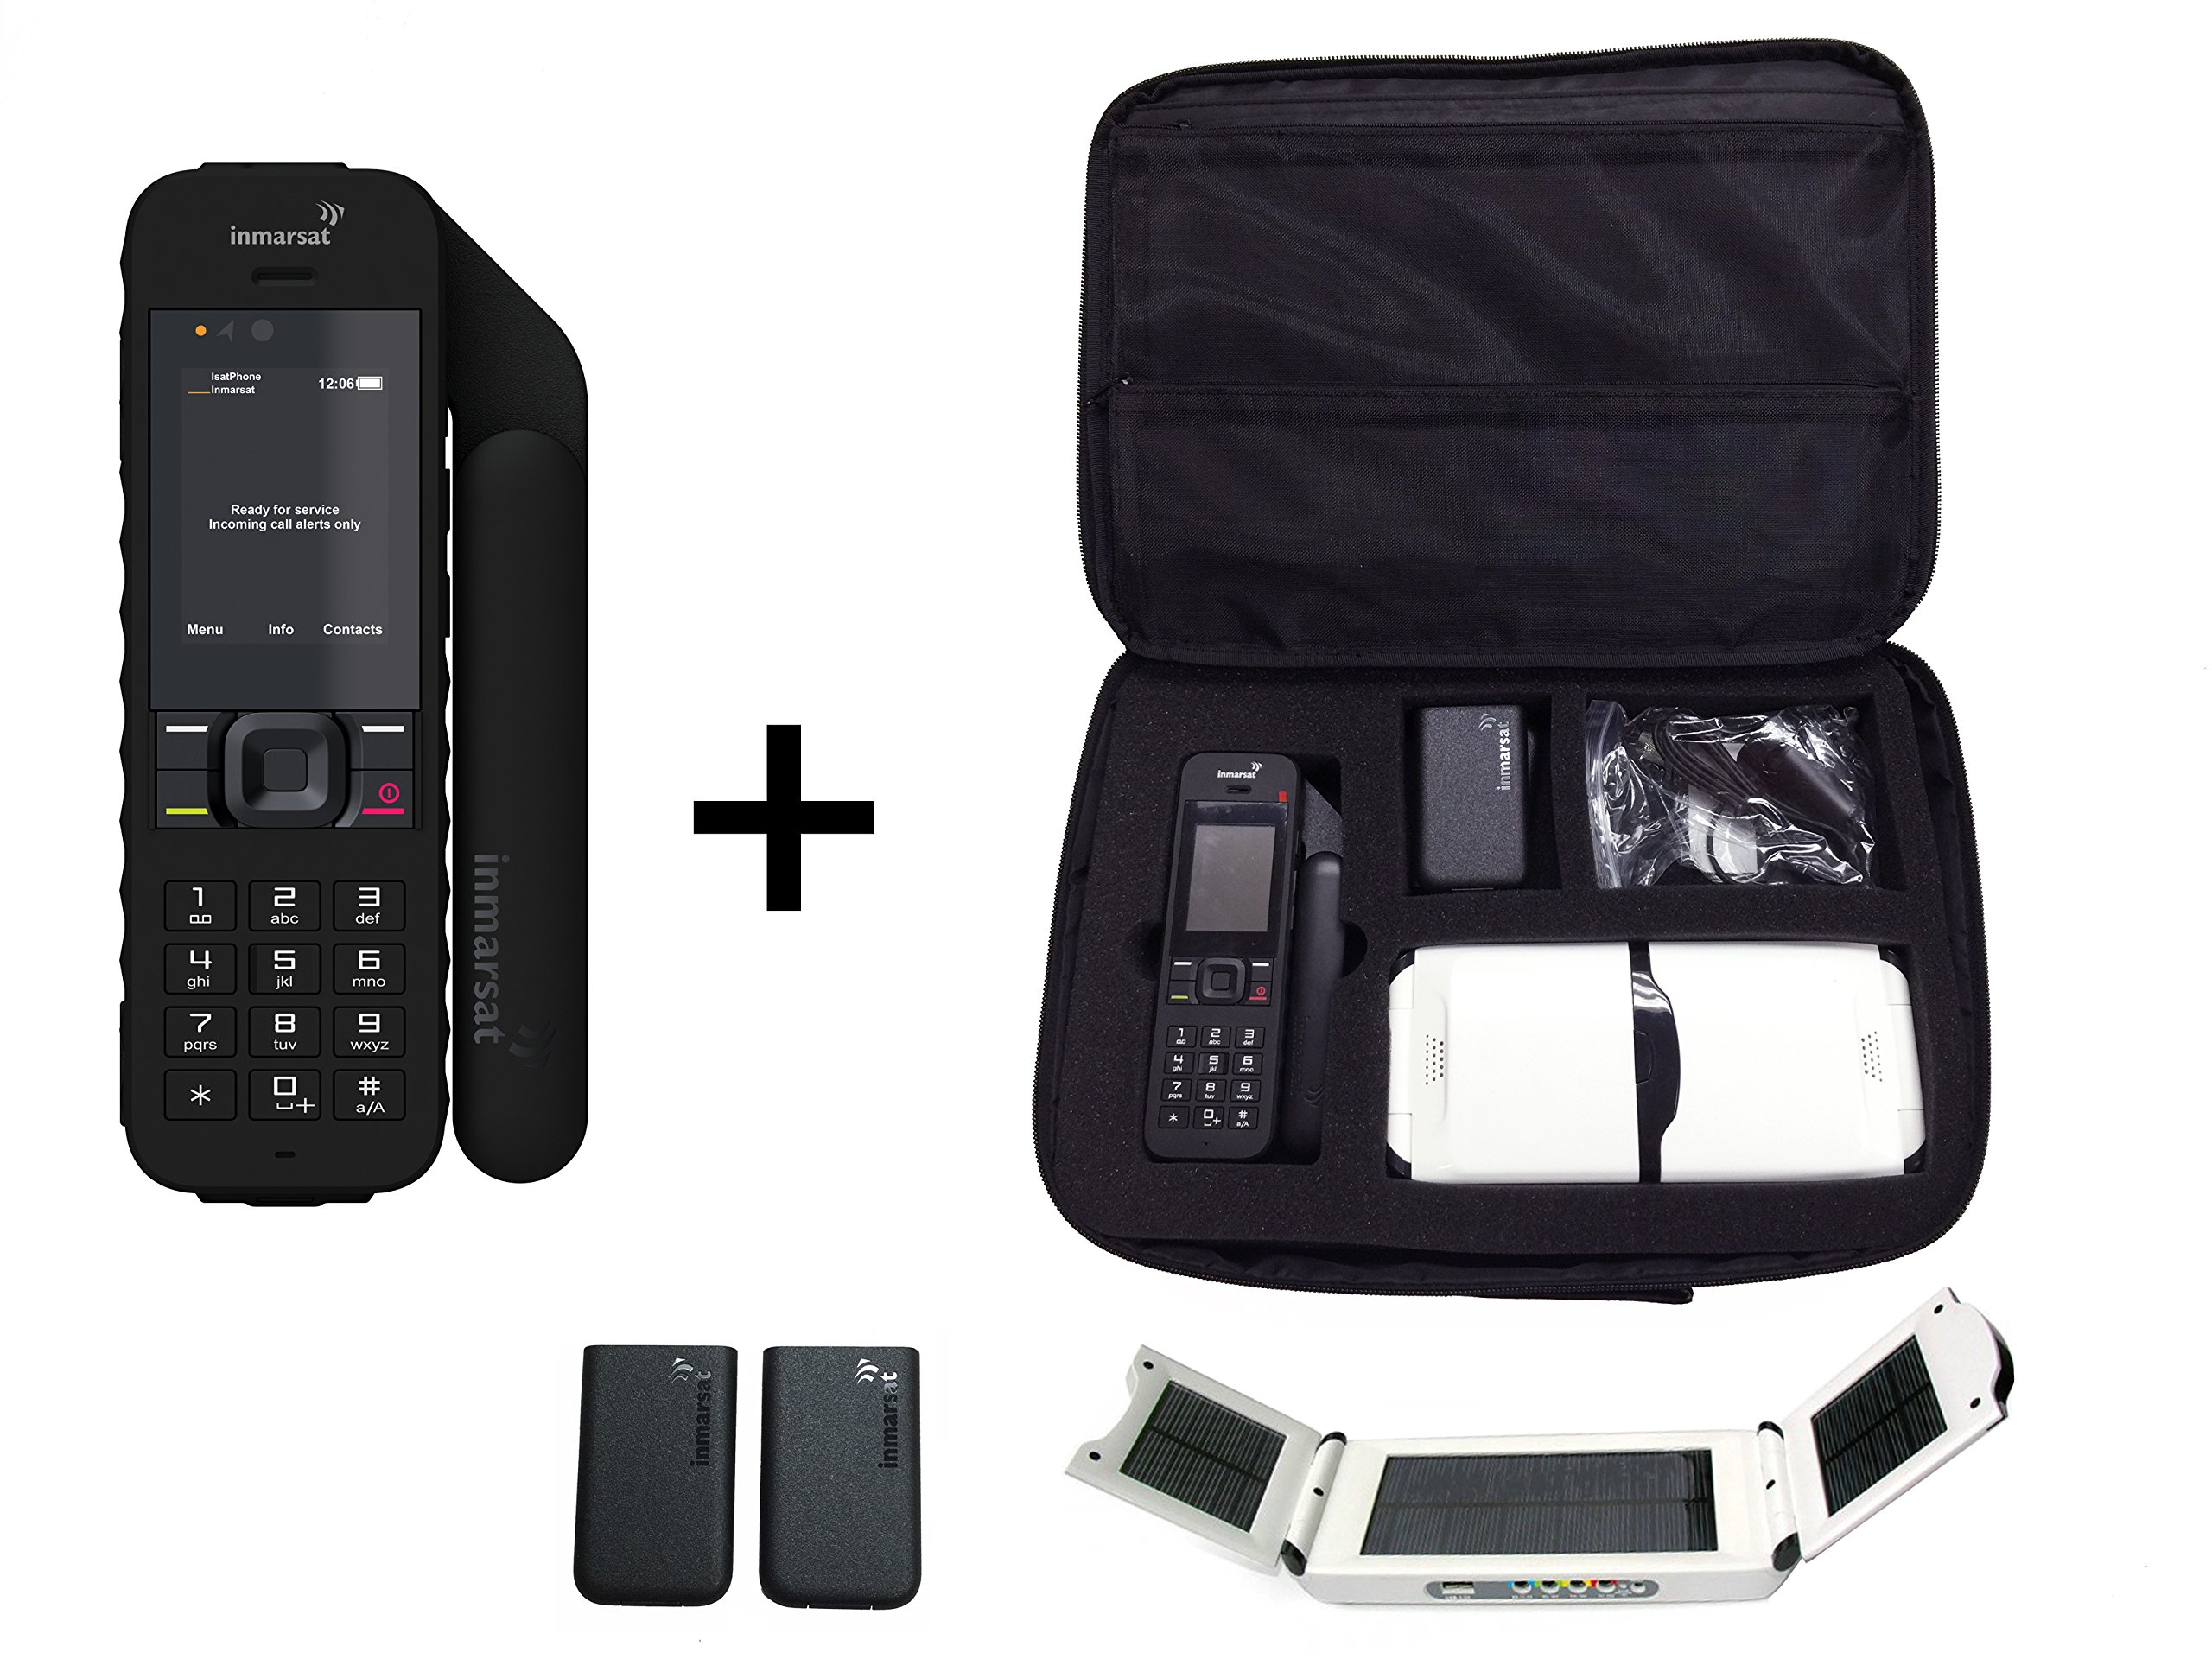 Inmarsat IsatPhone 2 Satellite Phone - Traveler Package w/ Solar Panel & Travel Bag by Inmarsat